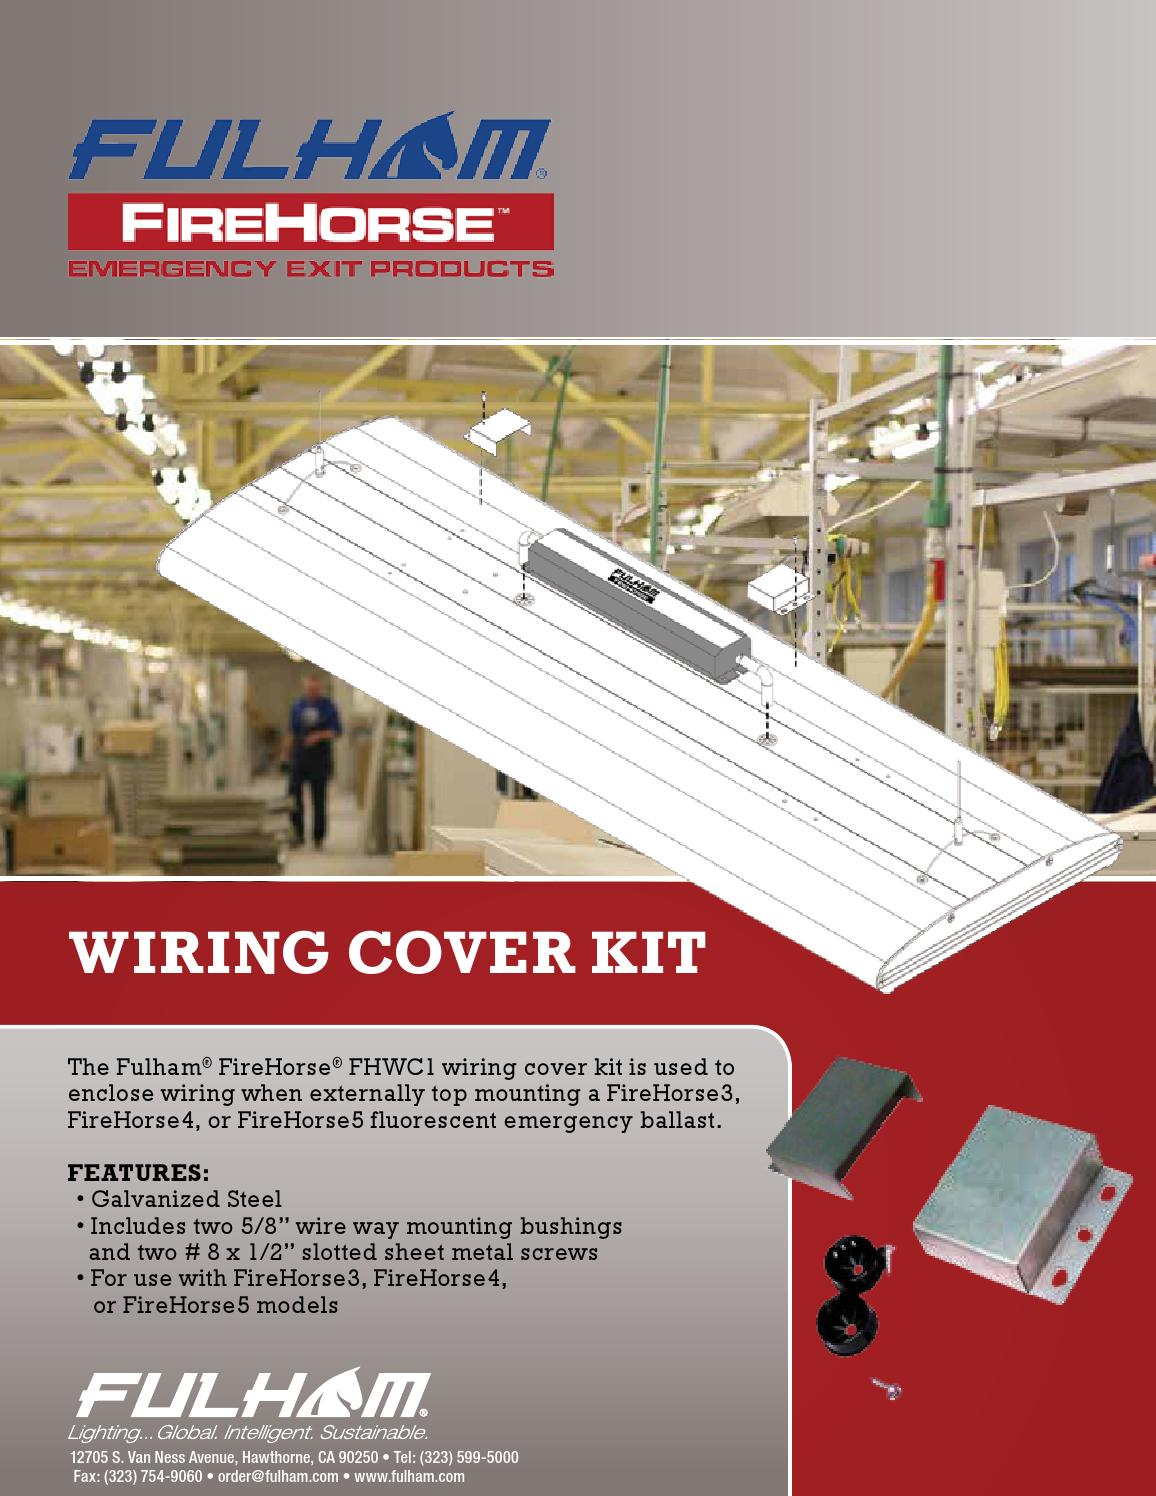 firehorse wiring cover kit by fulham by fulham co inc. Black Bedroom Furniture Sets. Home Design Ideas